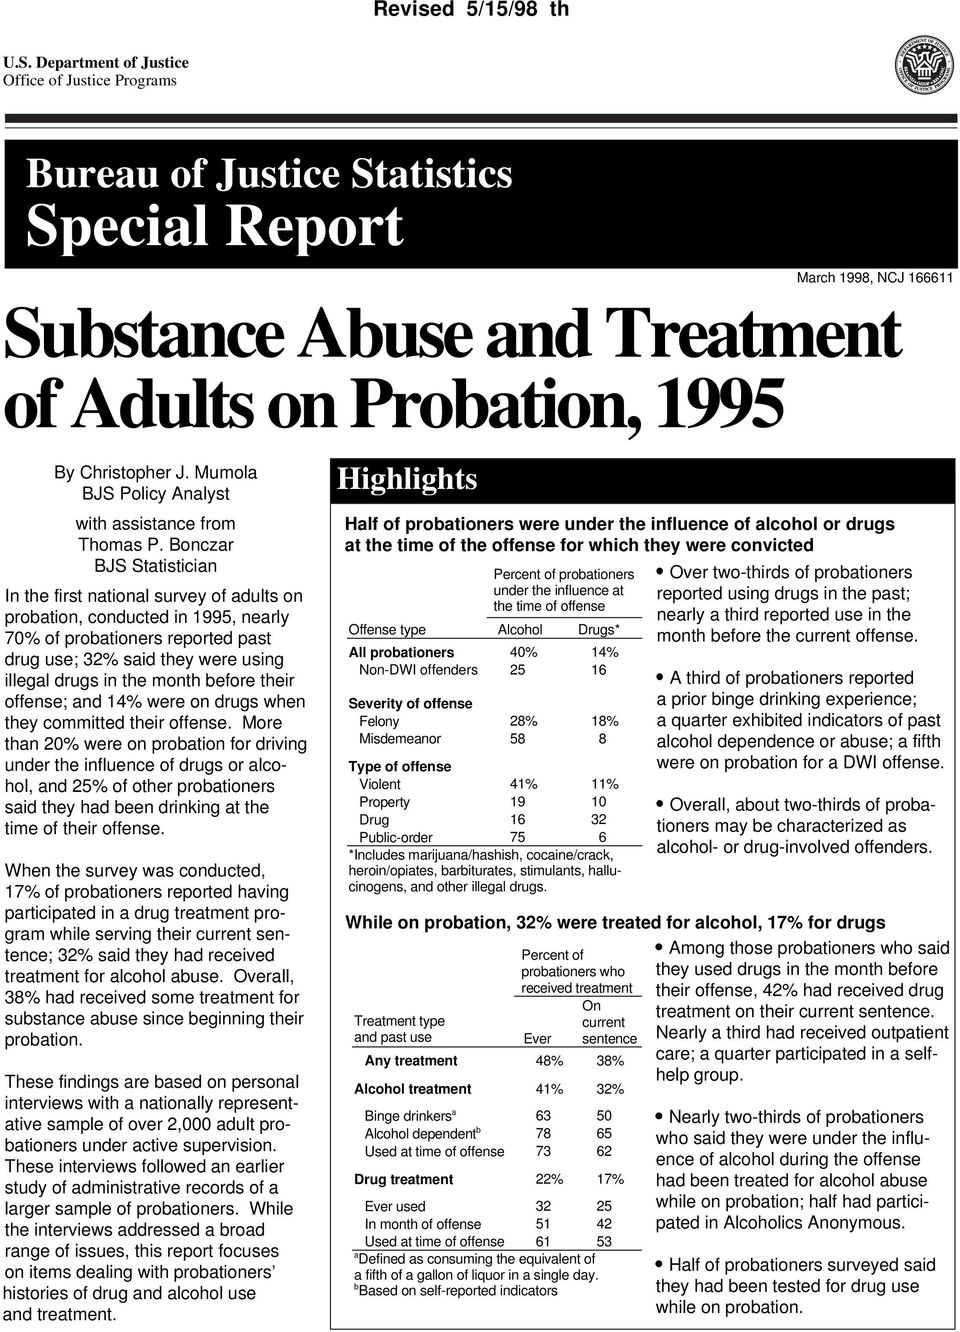 Bonczar BJS Statistician In the first national survey of adults on probation, conducted in 1995, nearly 70% of probationers reported past drug use; 32% said they were using illegal drugs in the month